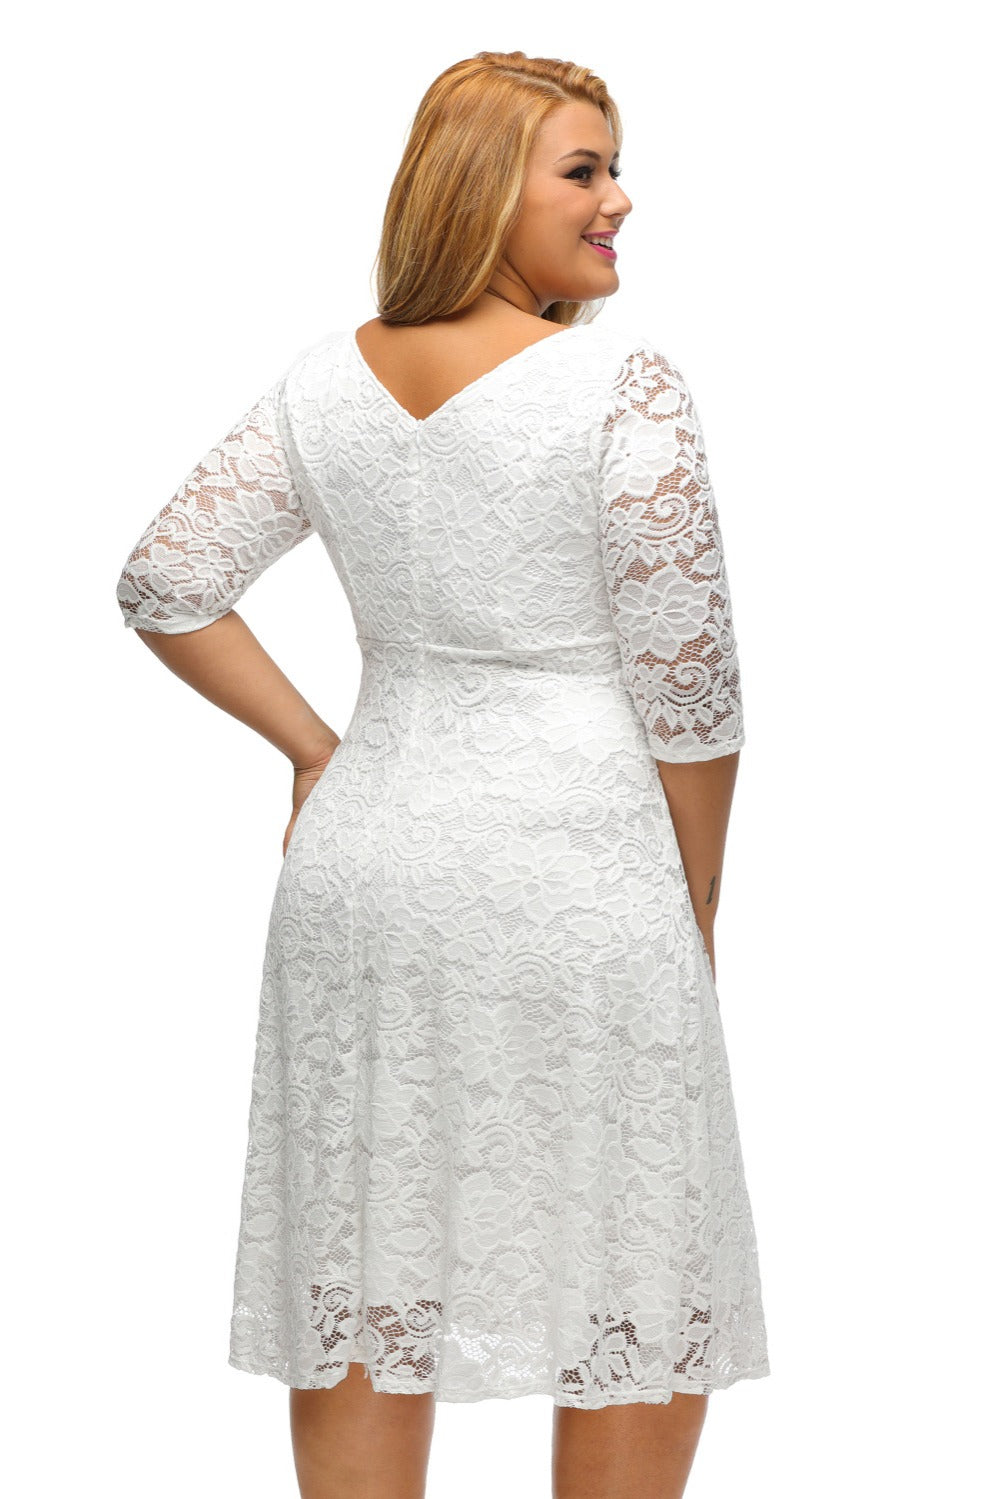 White Black Summer Elegant Floral Lace Half Sleeve Fit and Flare Curvy Midi  Plus Size Dress